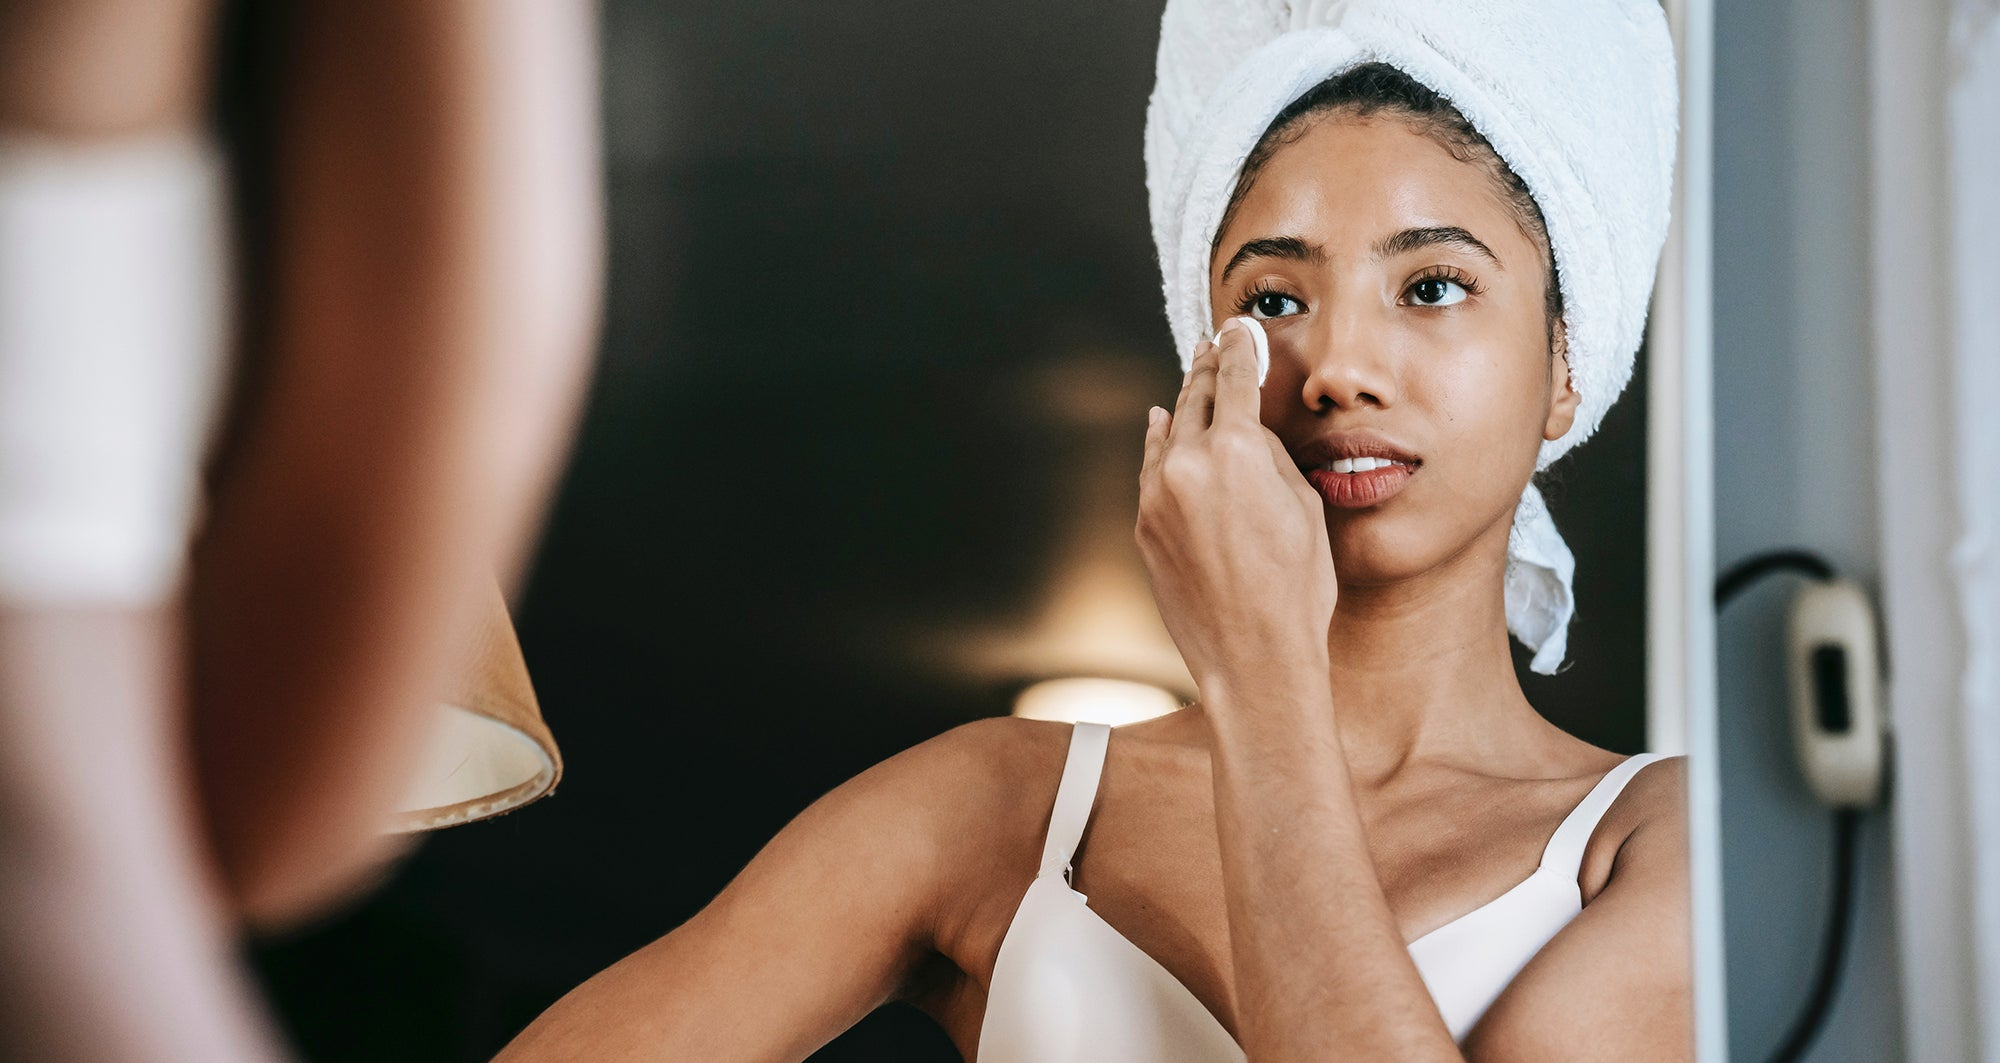 Beautiful Young working woman getting ready in the morning in front of her mirror, applying her skincare routine.